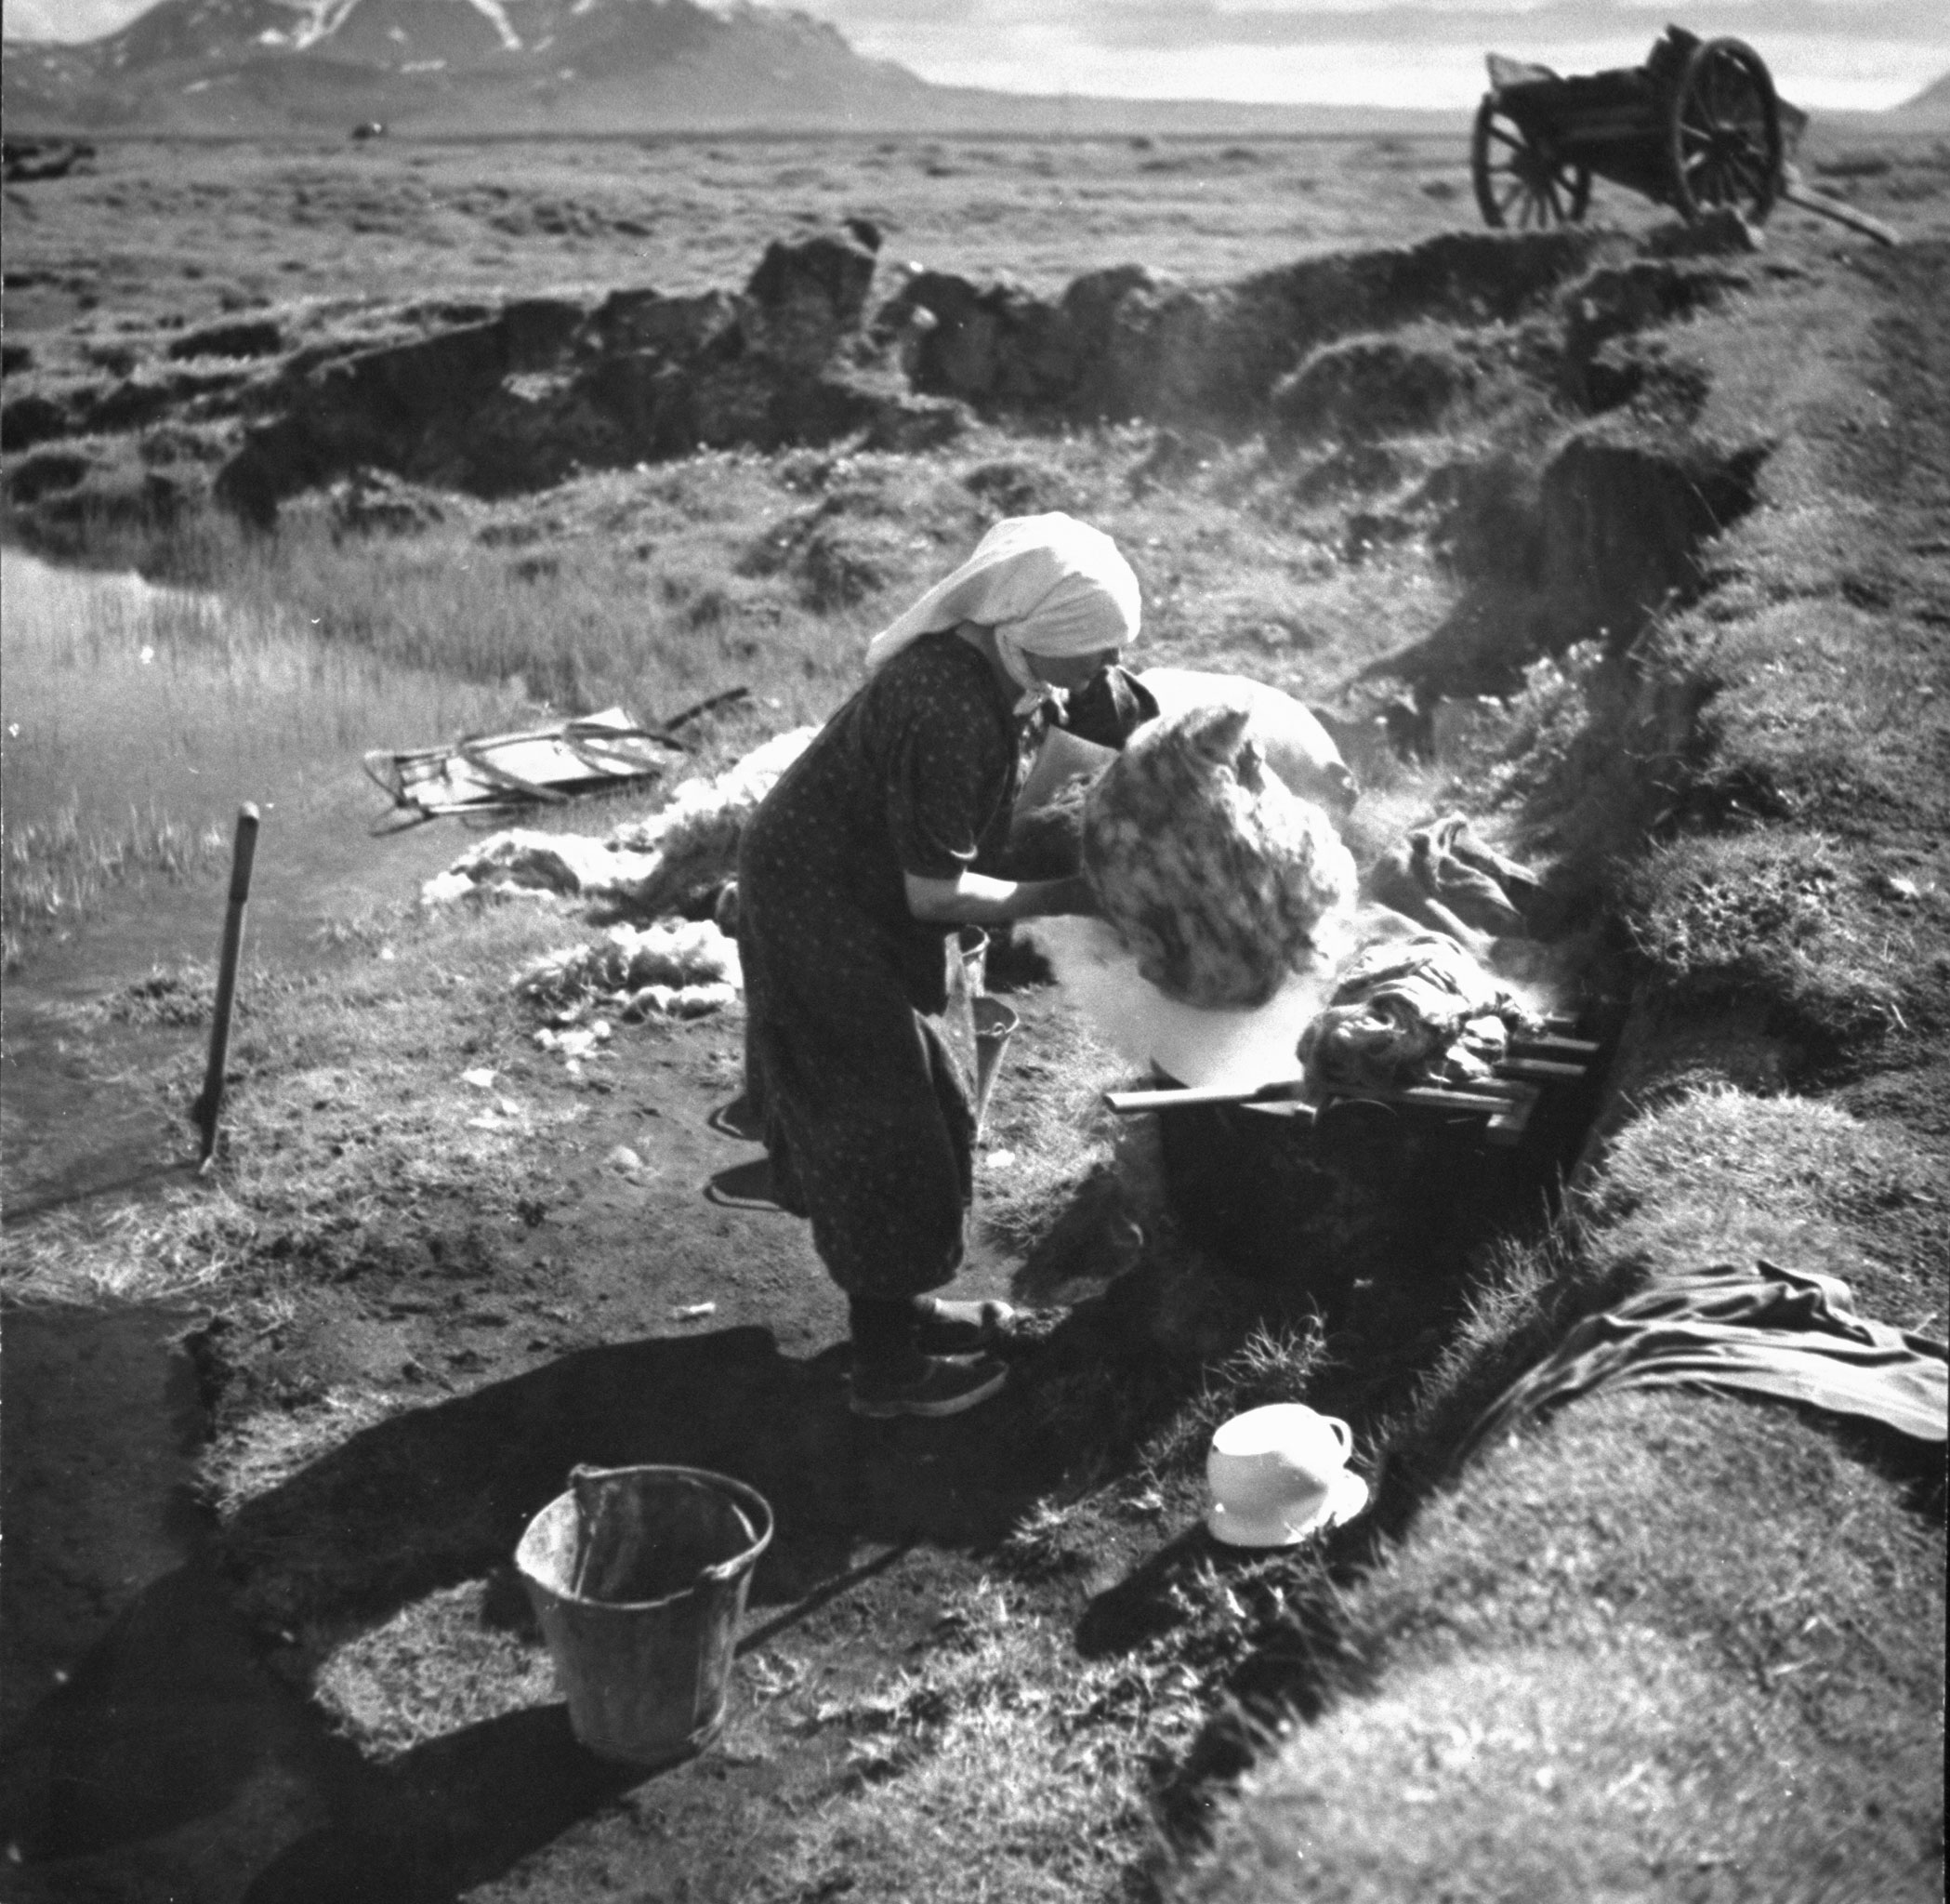 """<b>Caption from print:</b> """"Wool is handled in the traditional primitive way. Here we see a farmer woman boiling the wool in a large pot, after which it will be carefully rinsed in the clear water of the brook."""""""